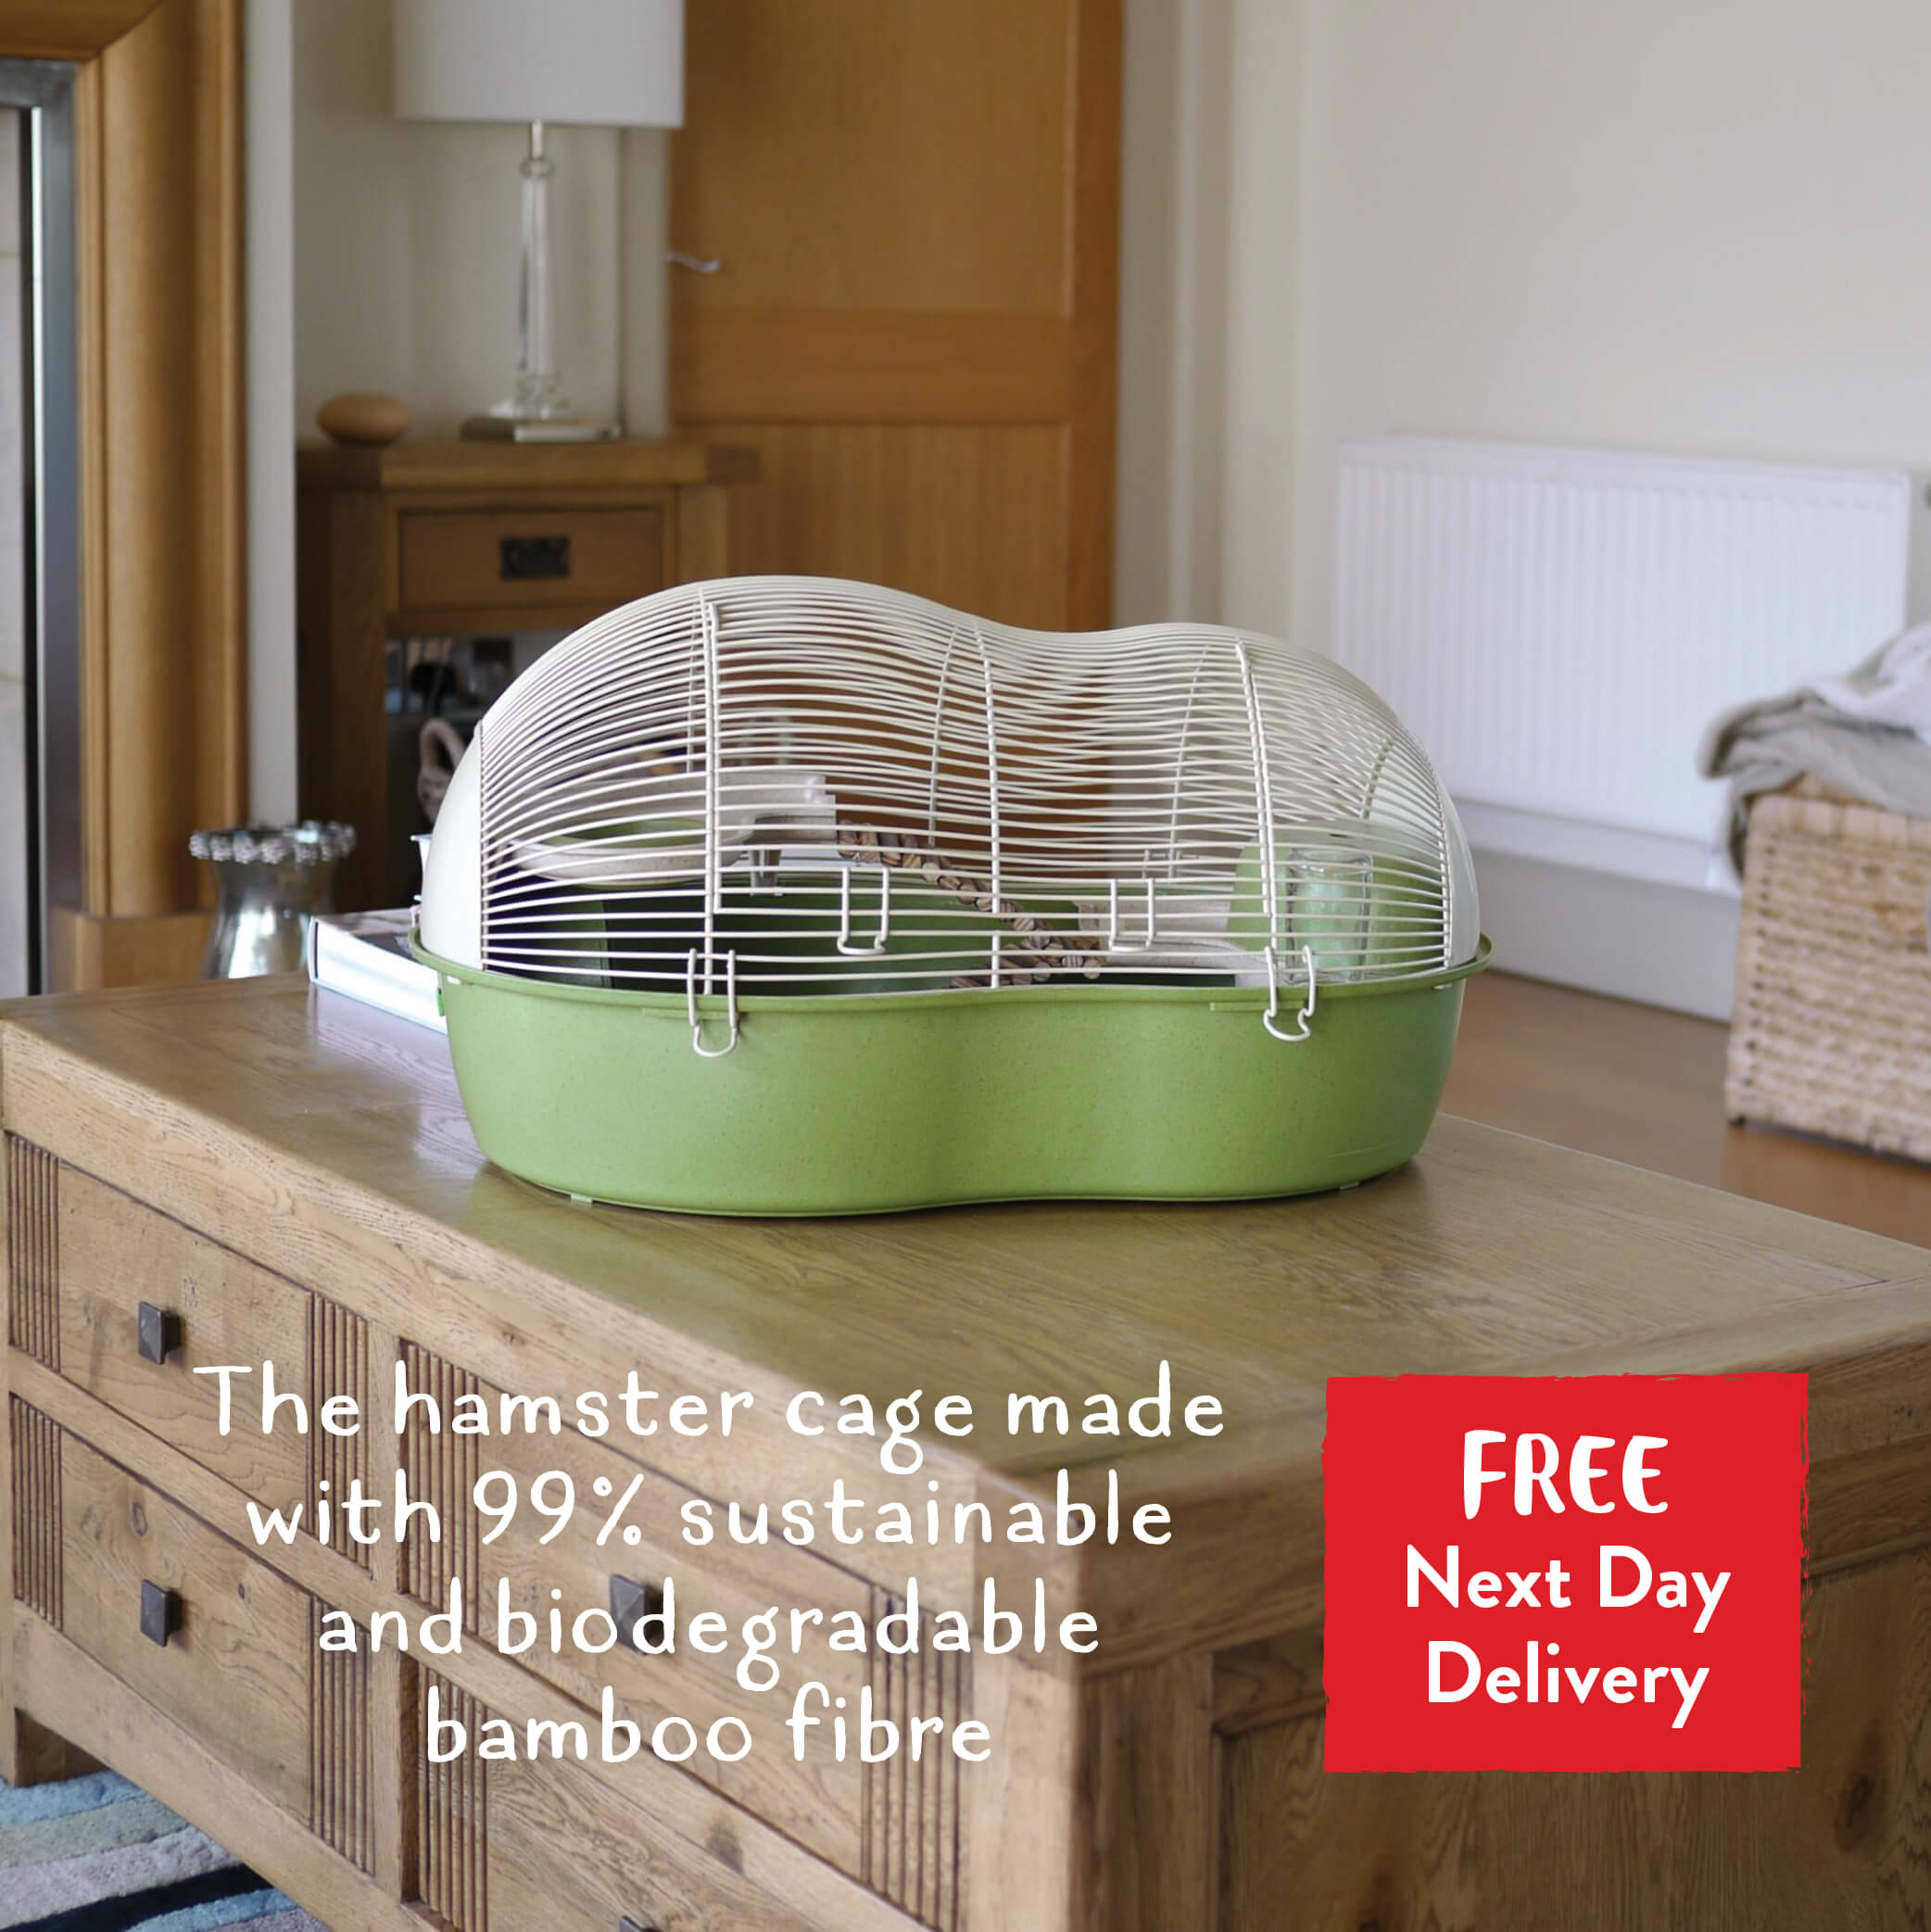 The hamster cage made with 99% sustainable and biodegradable bamboo fibre